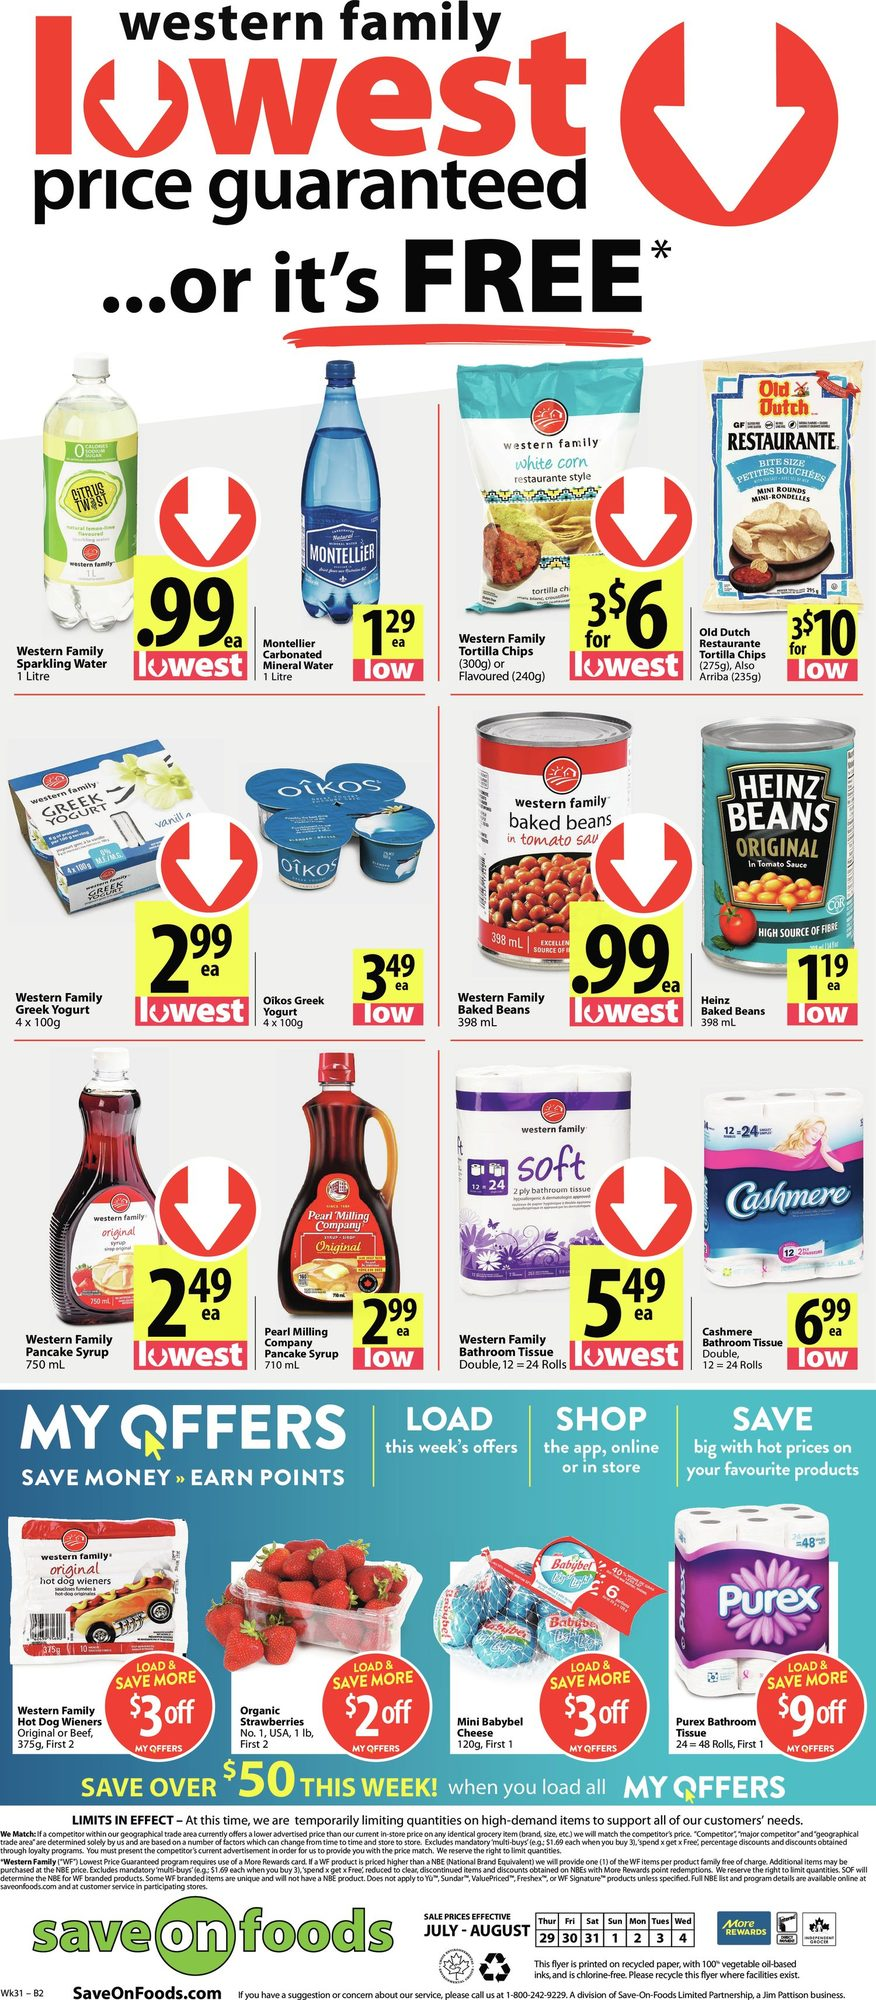 Save-On-Foods - Weekly Flyer Specials - Page 14